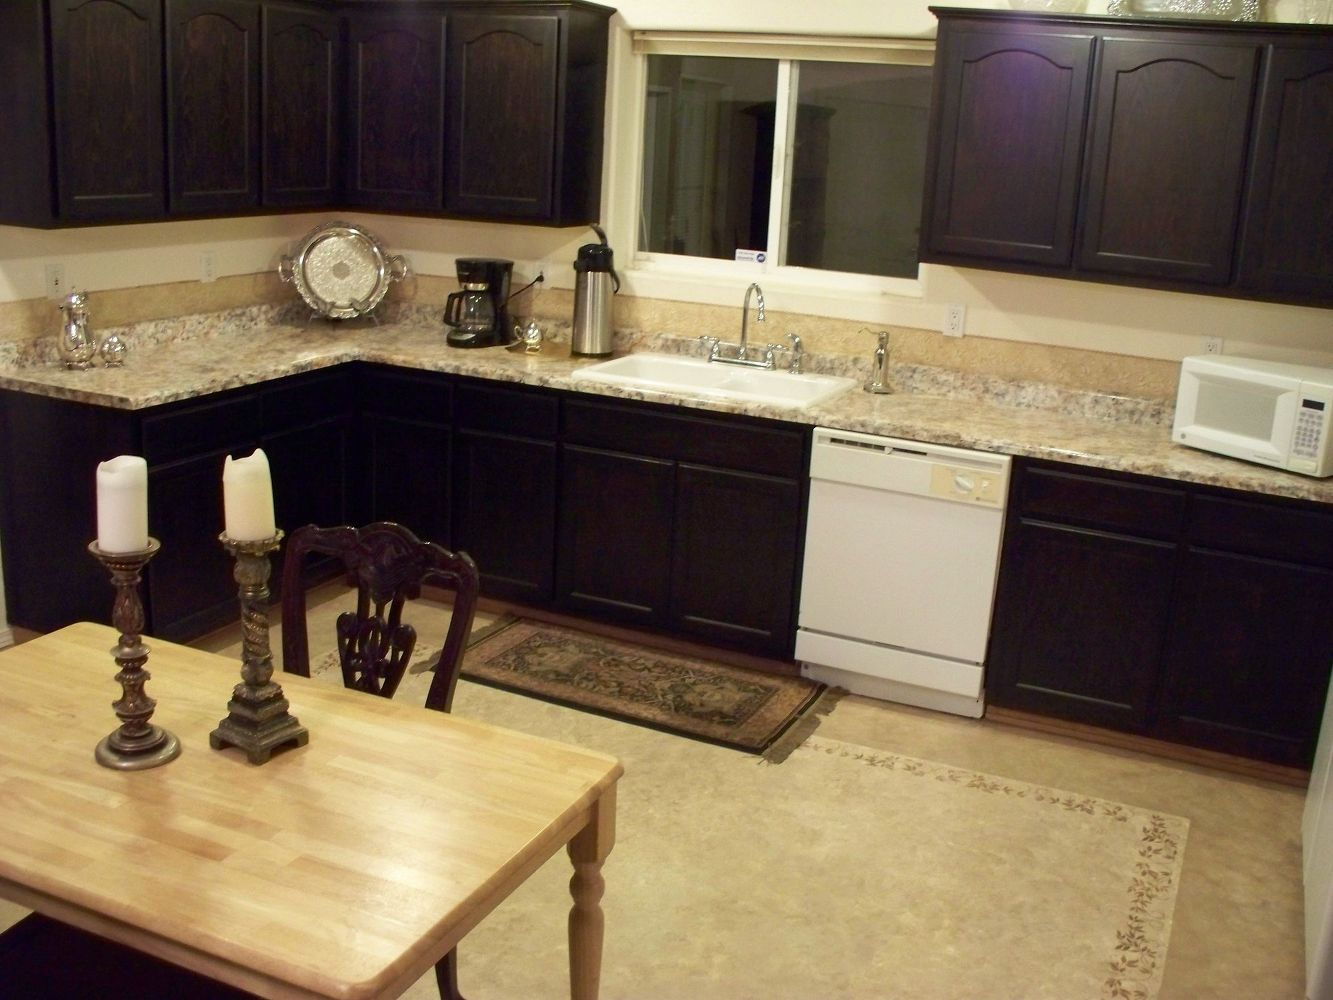 Delicieux Remodeling Ideas To Transform Your Mobile Home Kitchen New Countertops